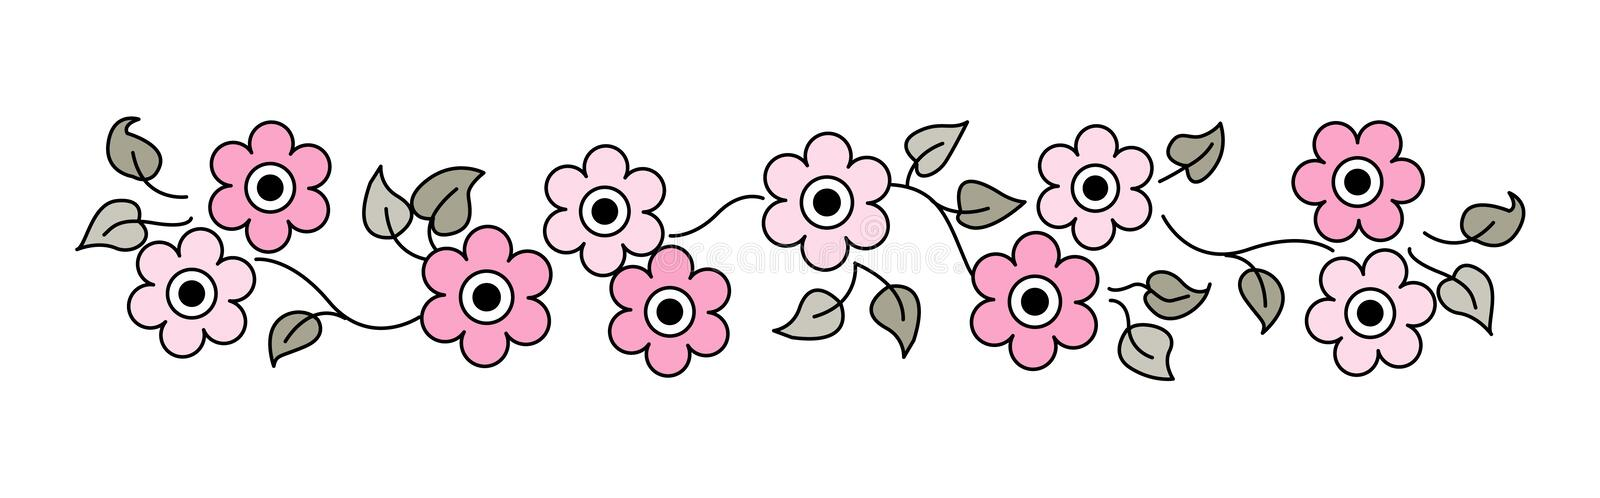 Flowers Line / divider royalty free illustration